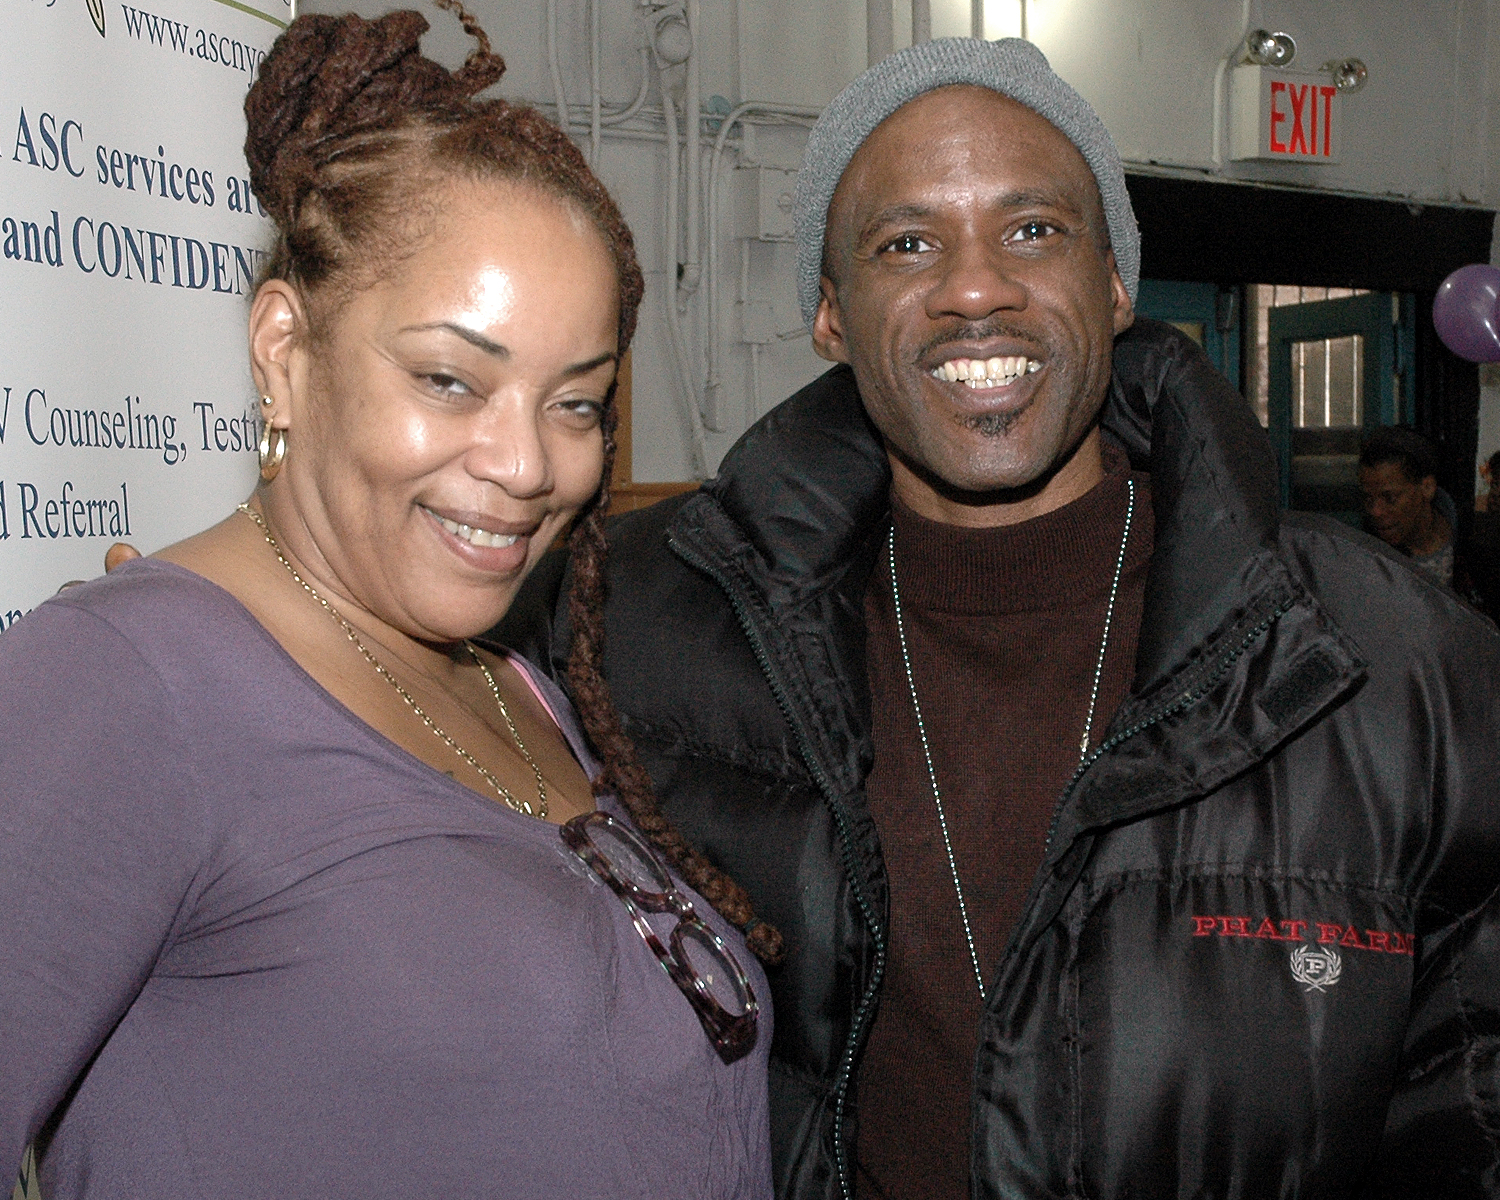 Deborah Yuelles and Raheem Kelly